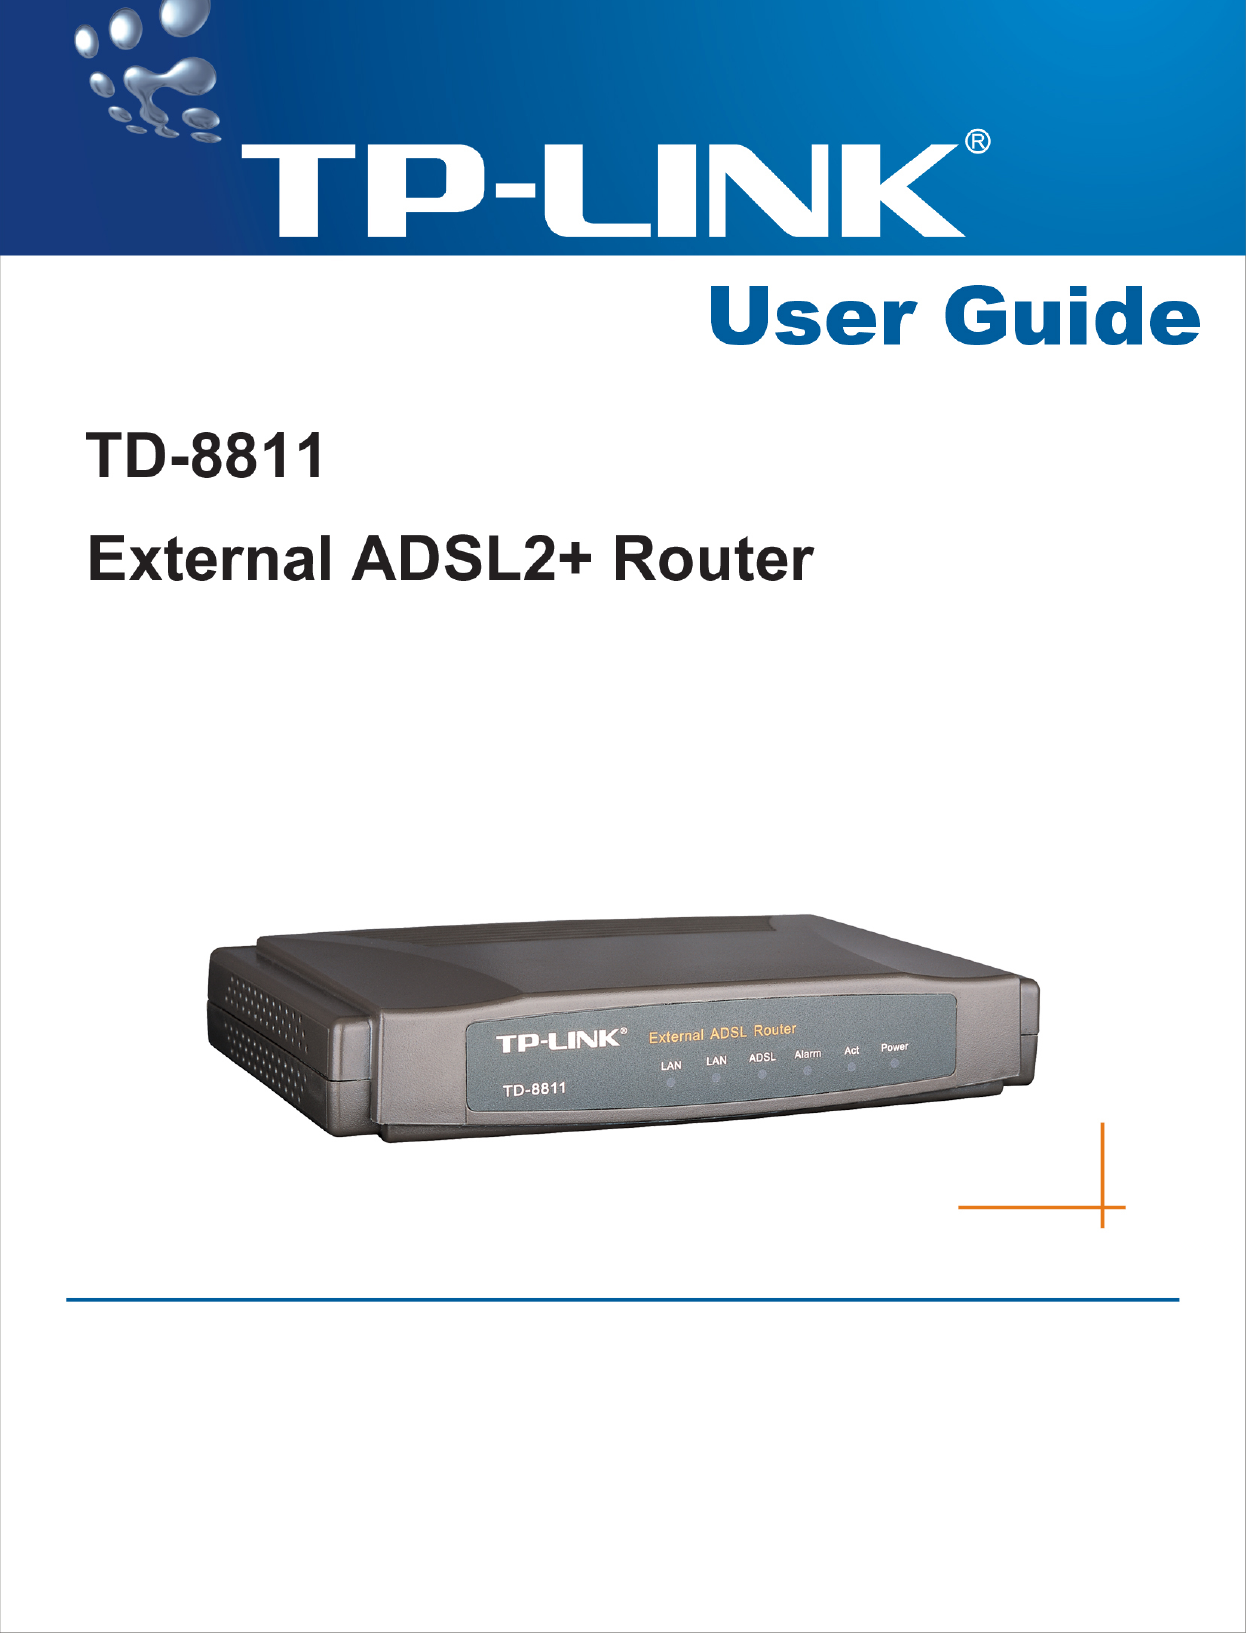 TP-LINK TD-8811 WINDOWS 7 64BIT DRIVER